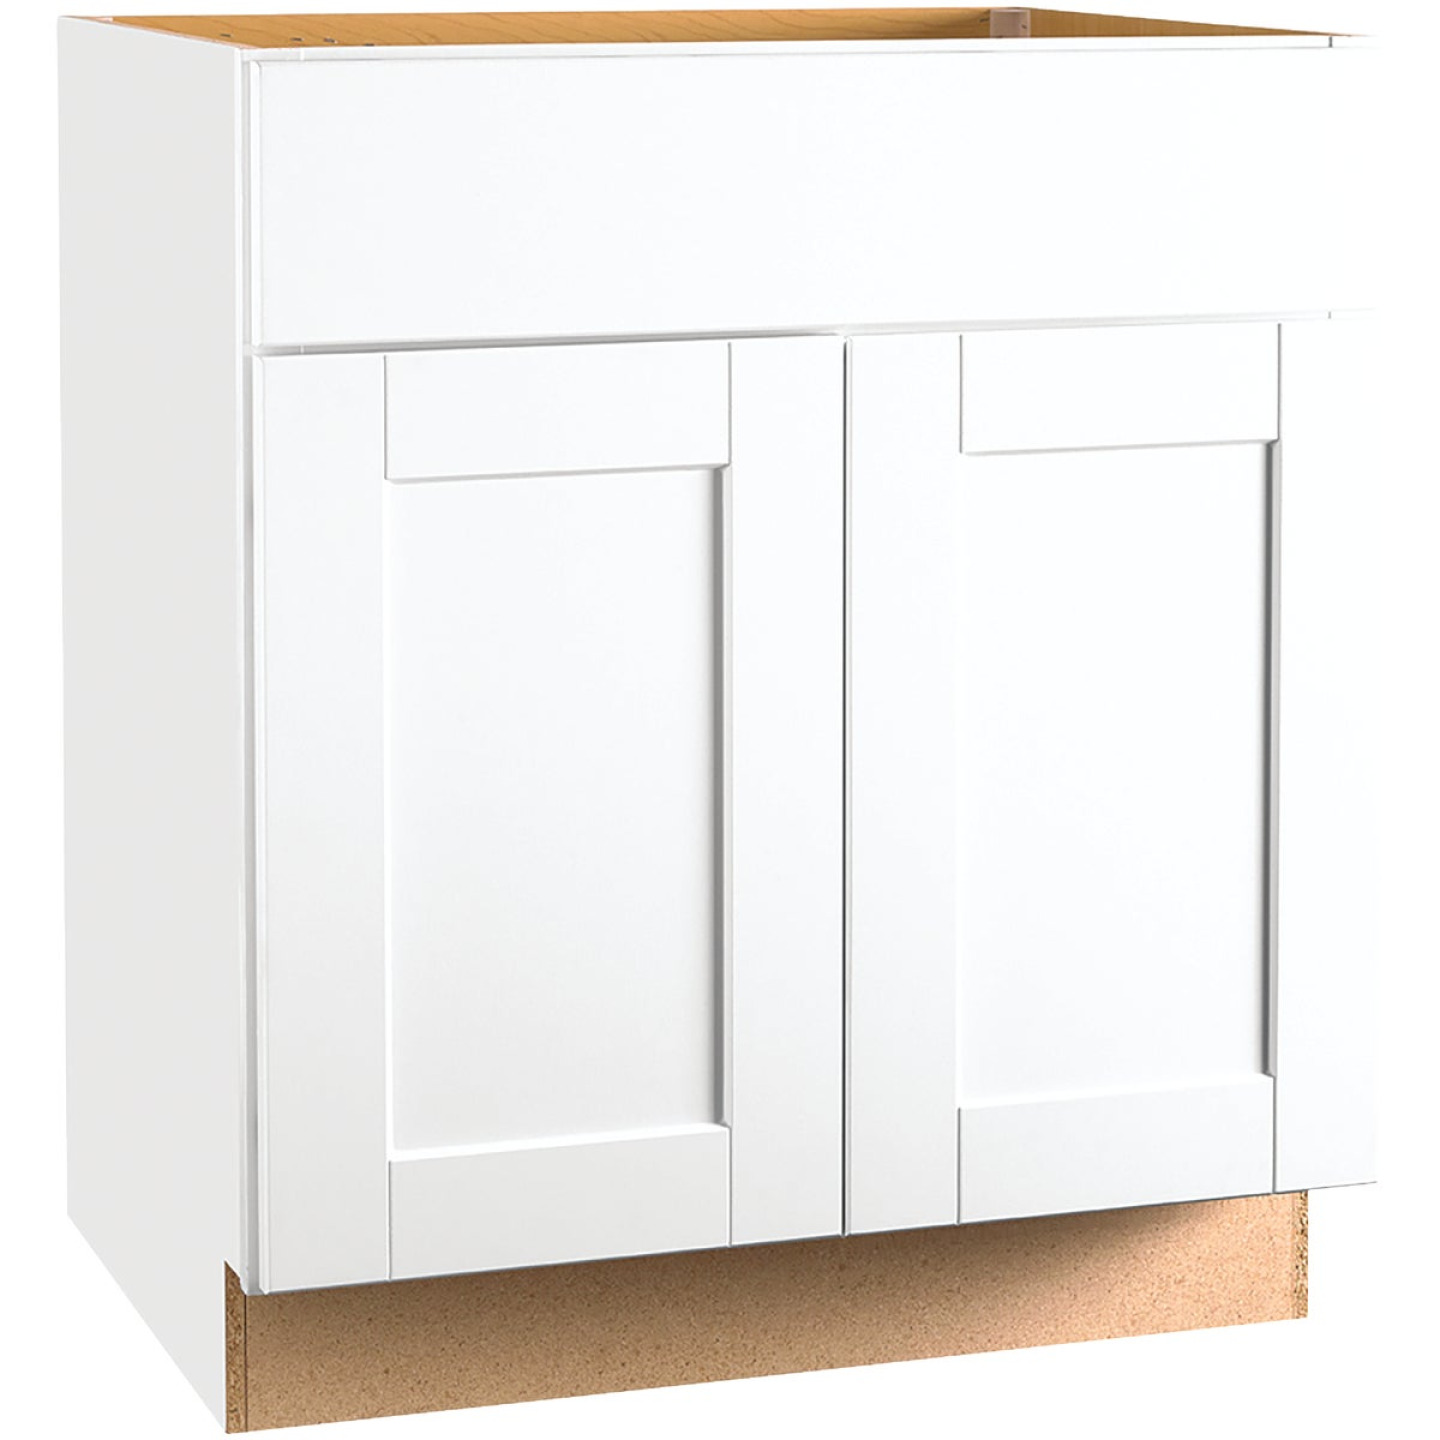 Continental Cabinets Andover Shaker 30 In. W x 34 In. H x 24 In. D White Thermofoil Base Kitchen Cabinet Image 1